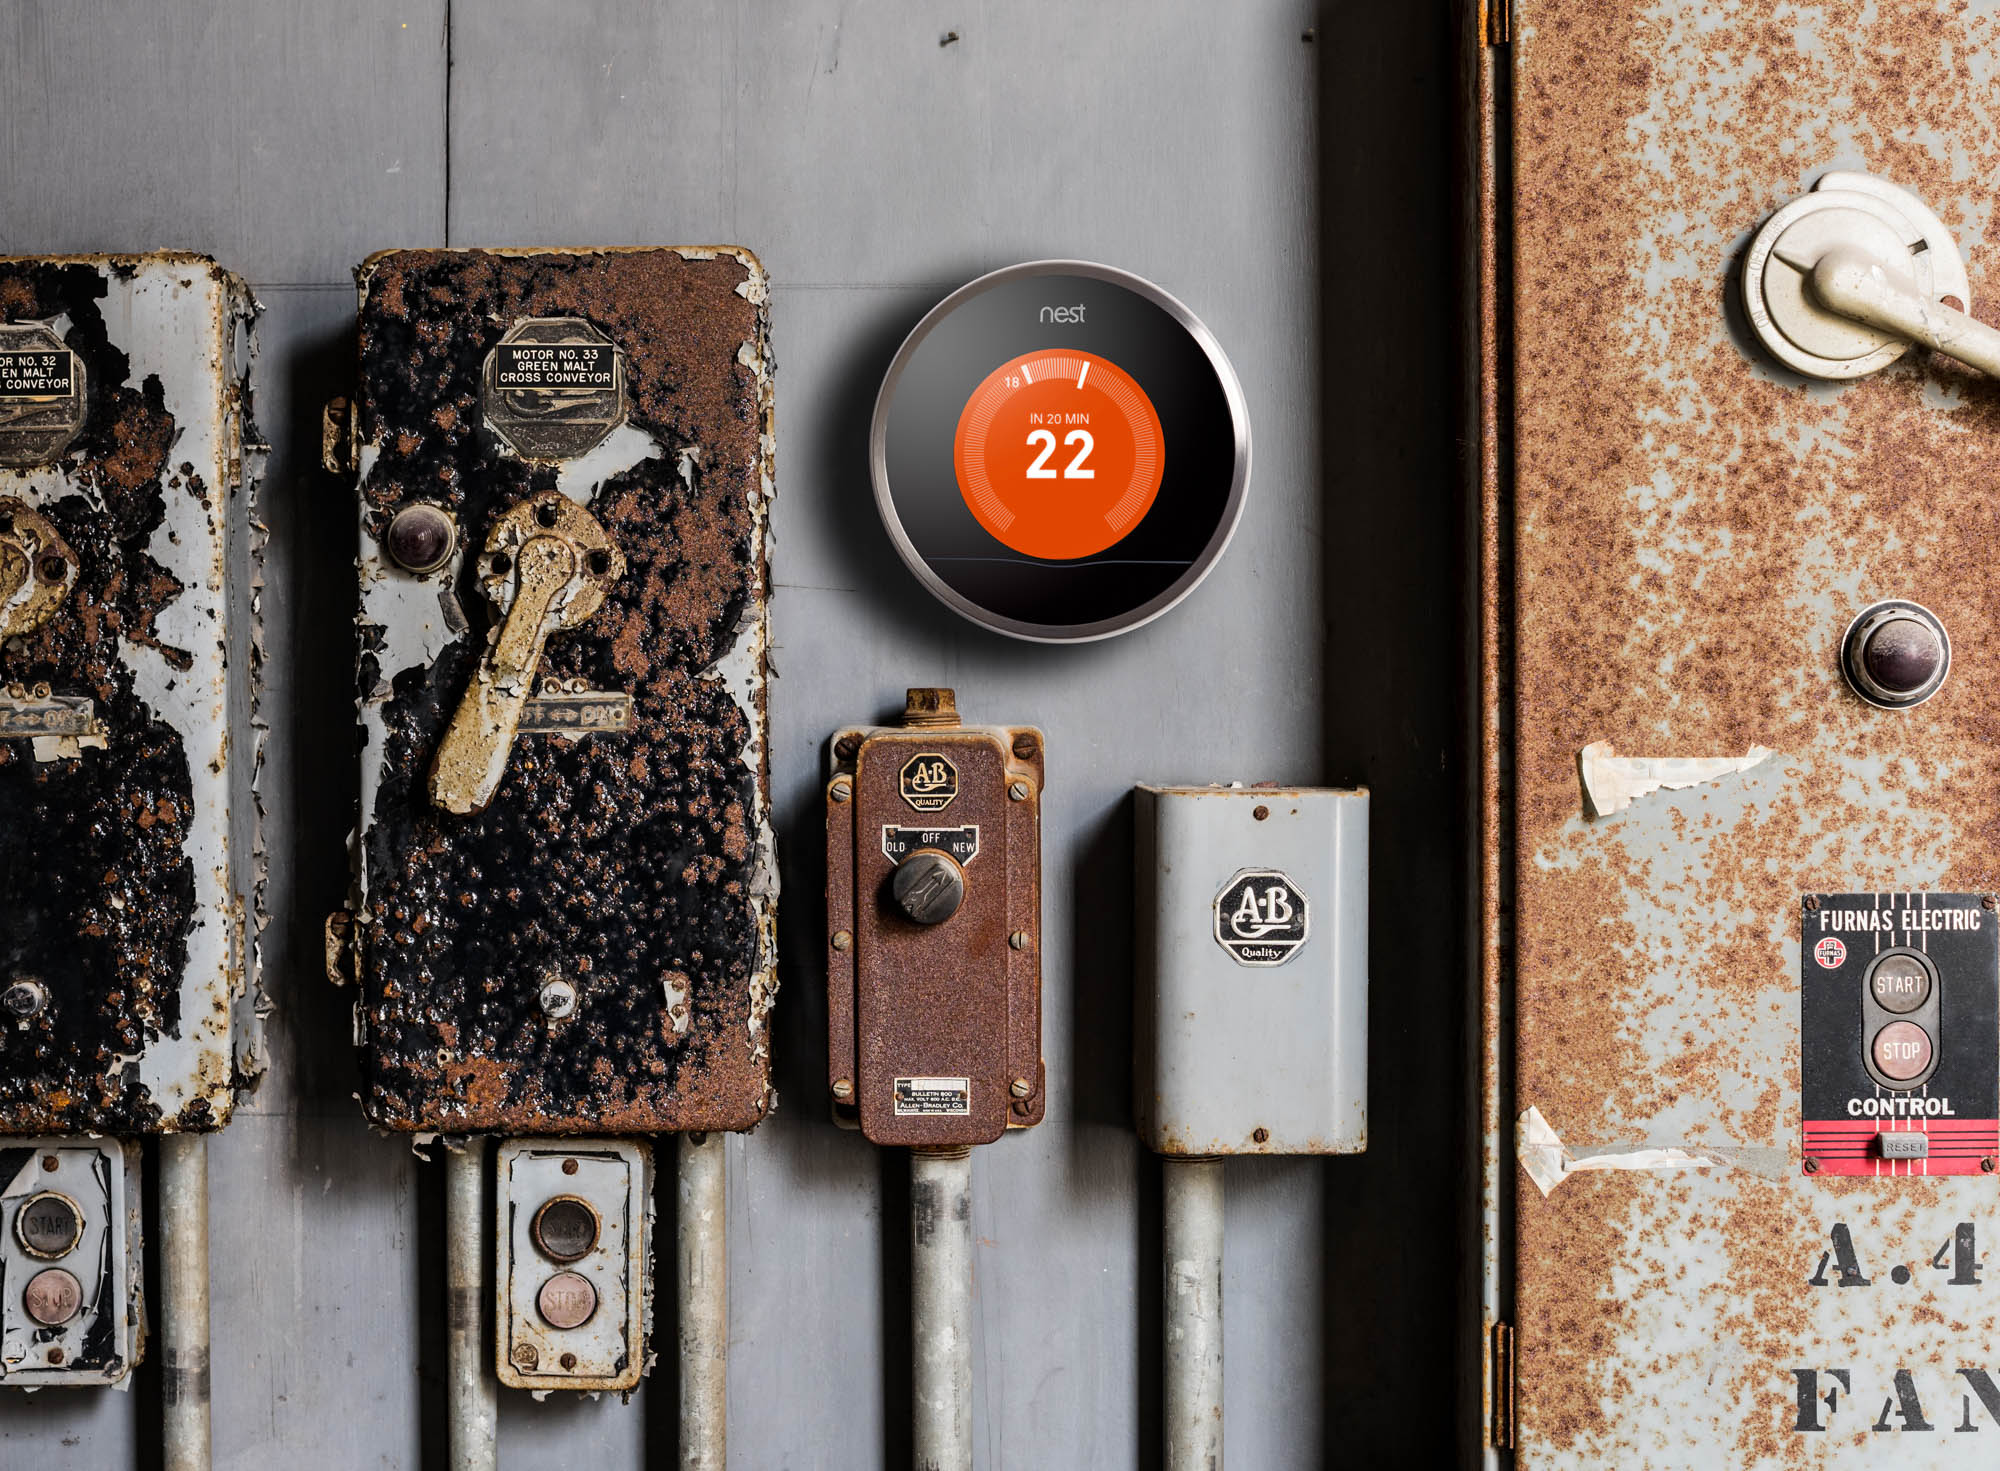 Nest thermostat on rusty wall